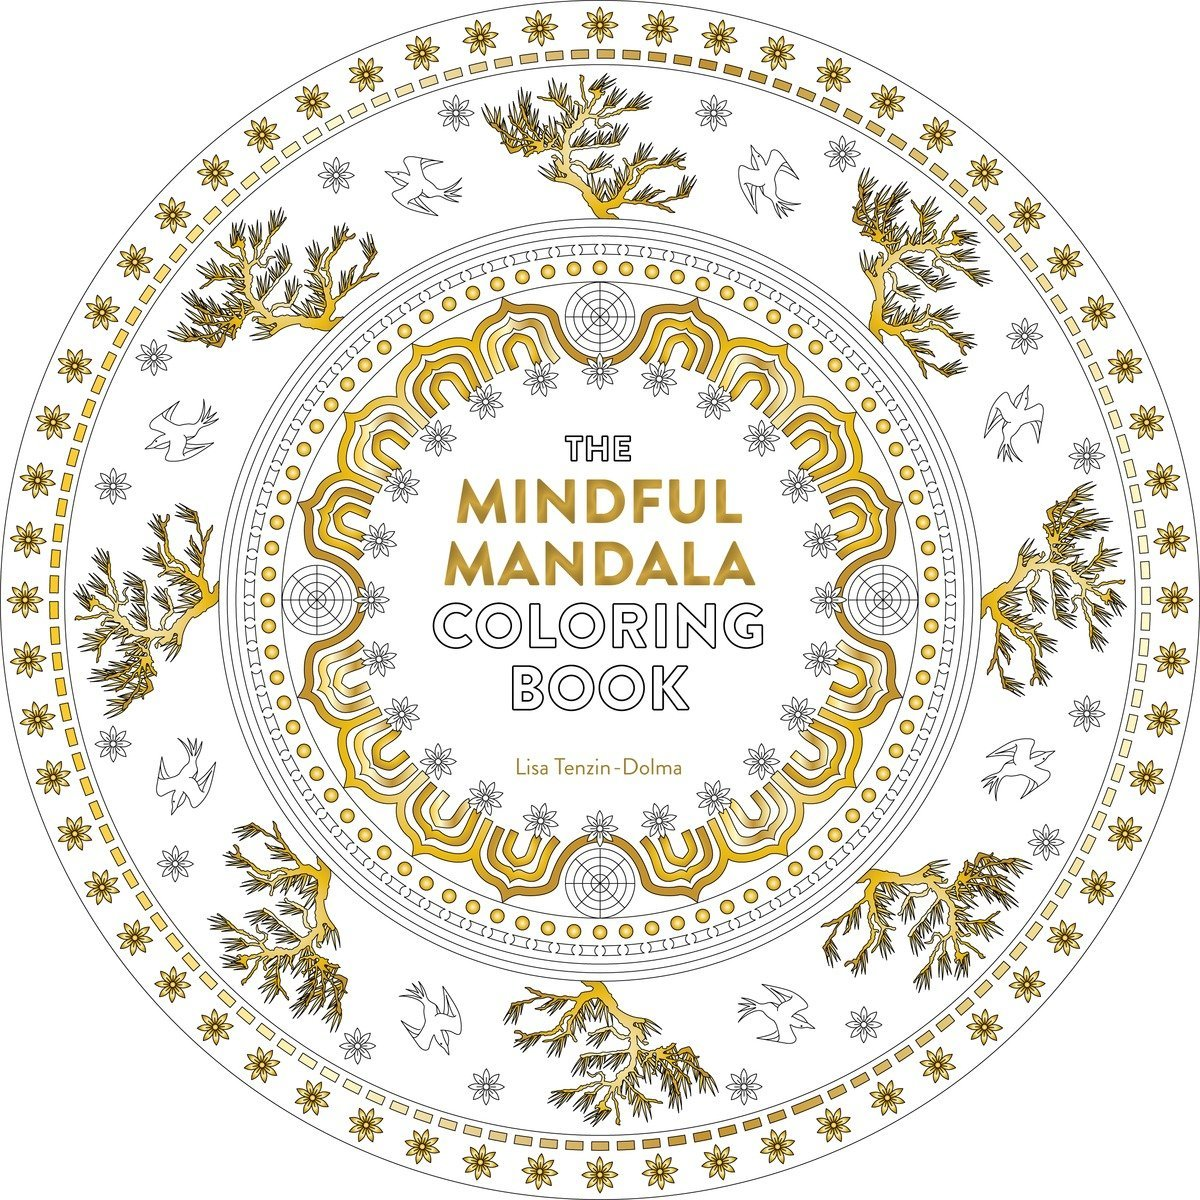 Download The Mindful Mandala Coloring Book: Inspiring Designs for Contemplation, Meditation and Healing (Watkins Adult Coloring Pages) pdf epub